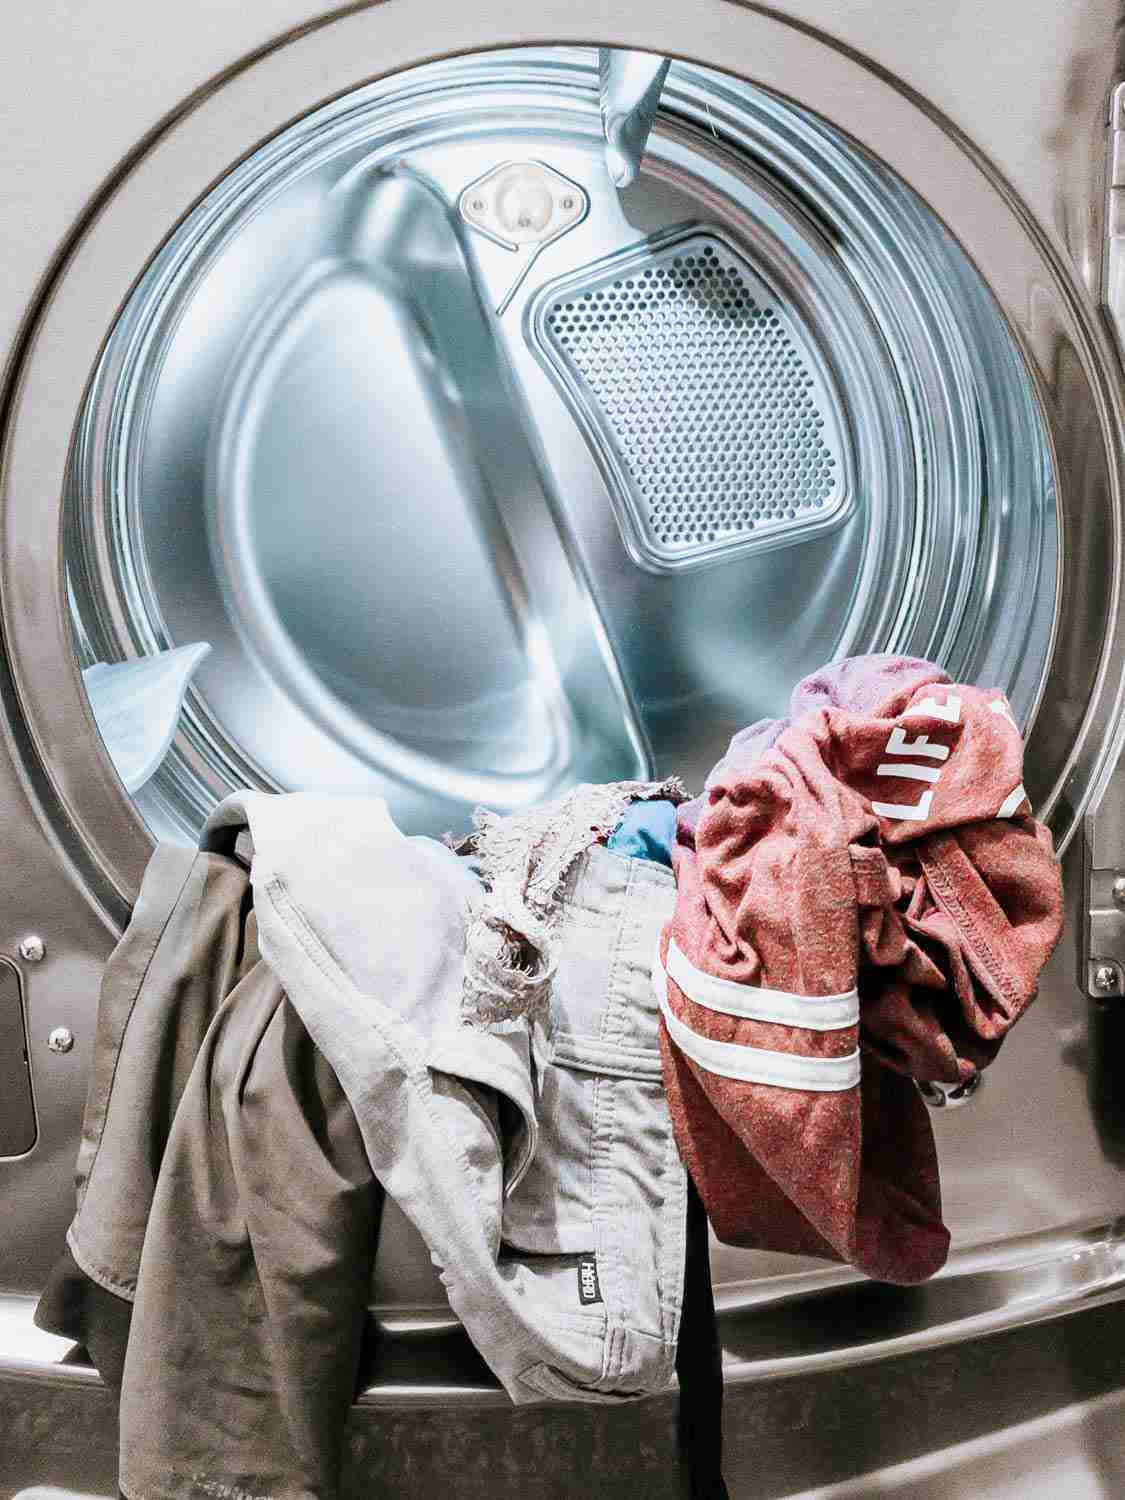 Laundry washing machine with dirty clothes from traveling minimally